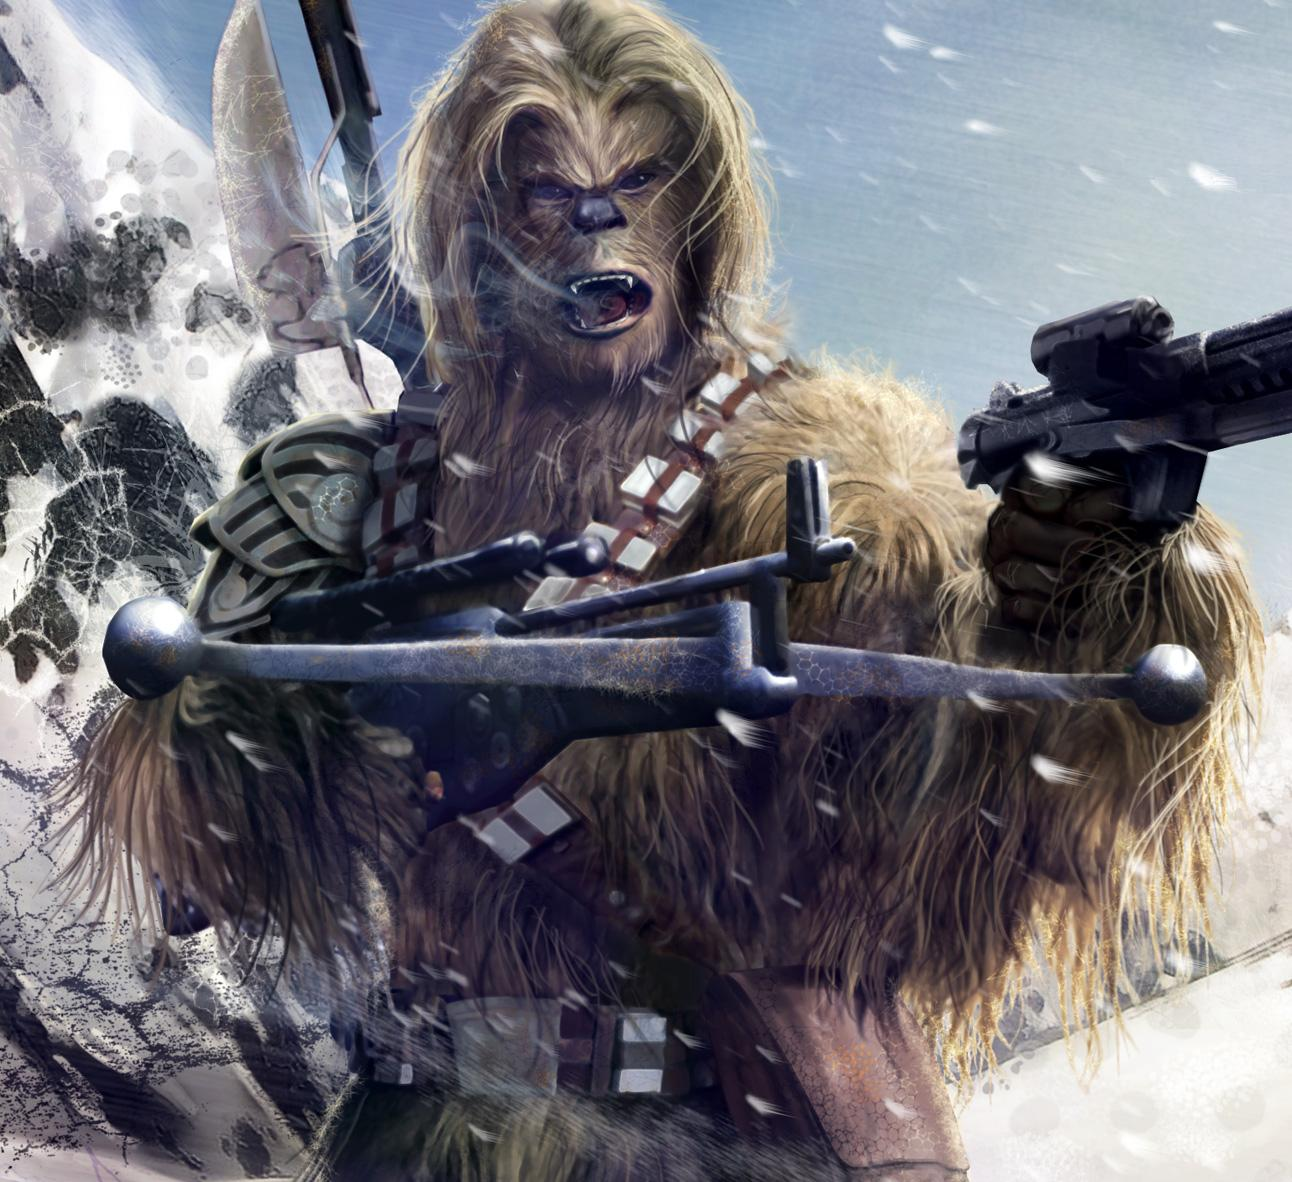 Wookiee_Warrior_TNsR_by_Chamberlain.jpg